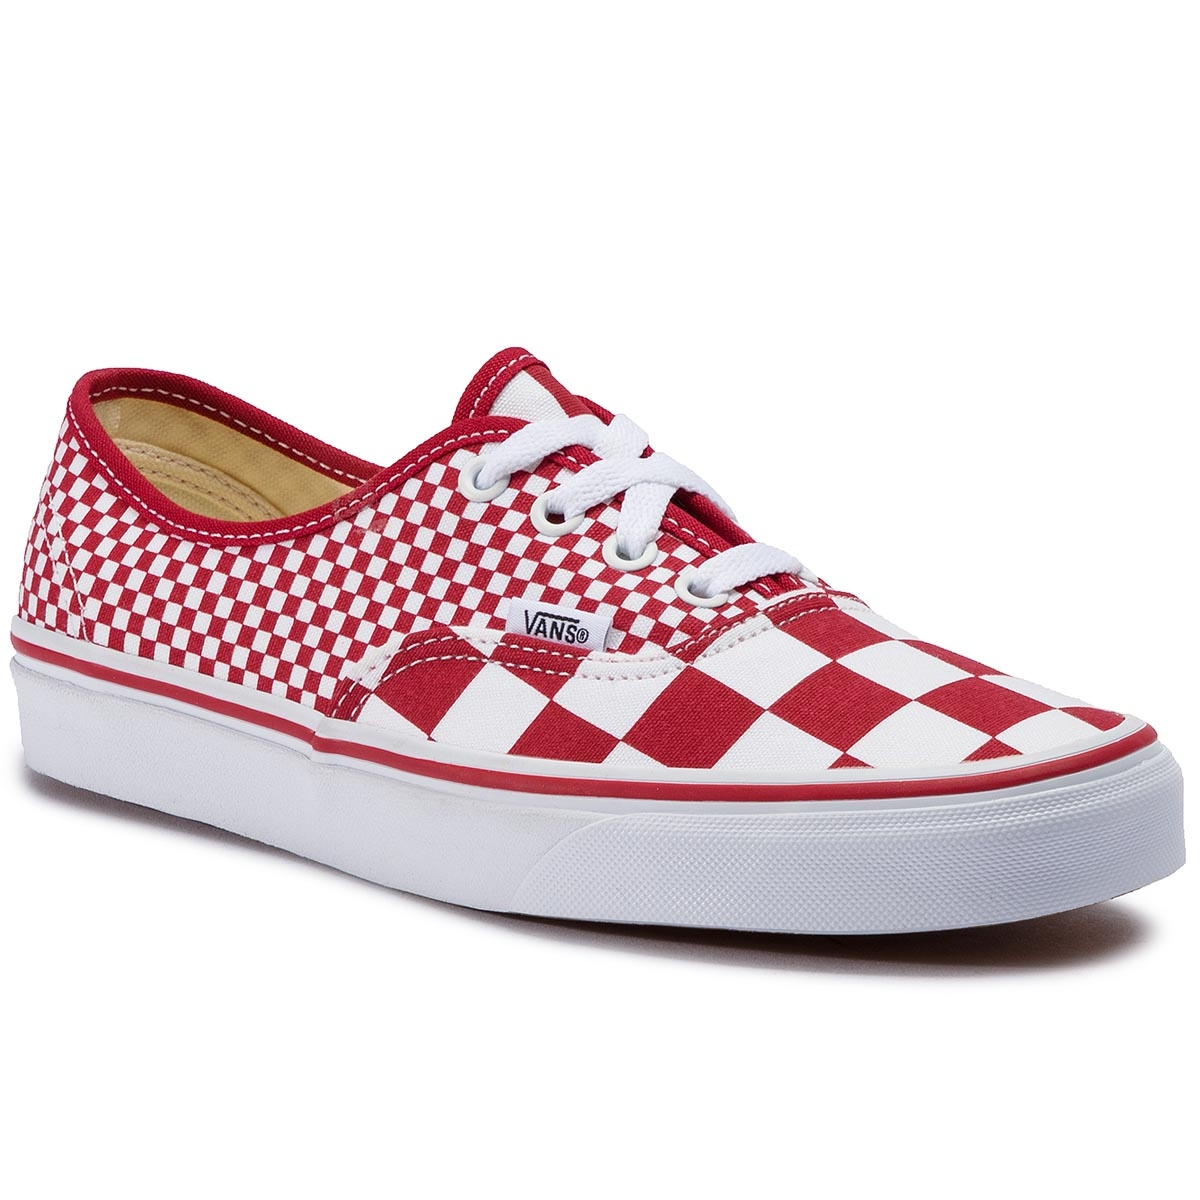 Teniși Vans - Authentic Vn0a38emvk51 (Mix Checker) Chili Peppe imagine epantofi.ro 2021